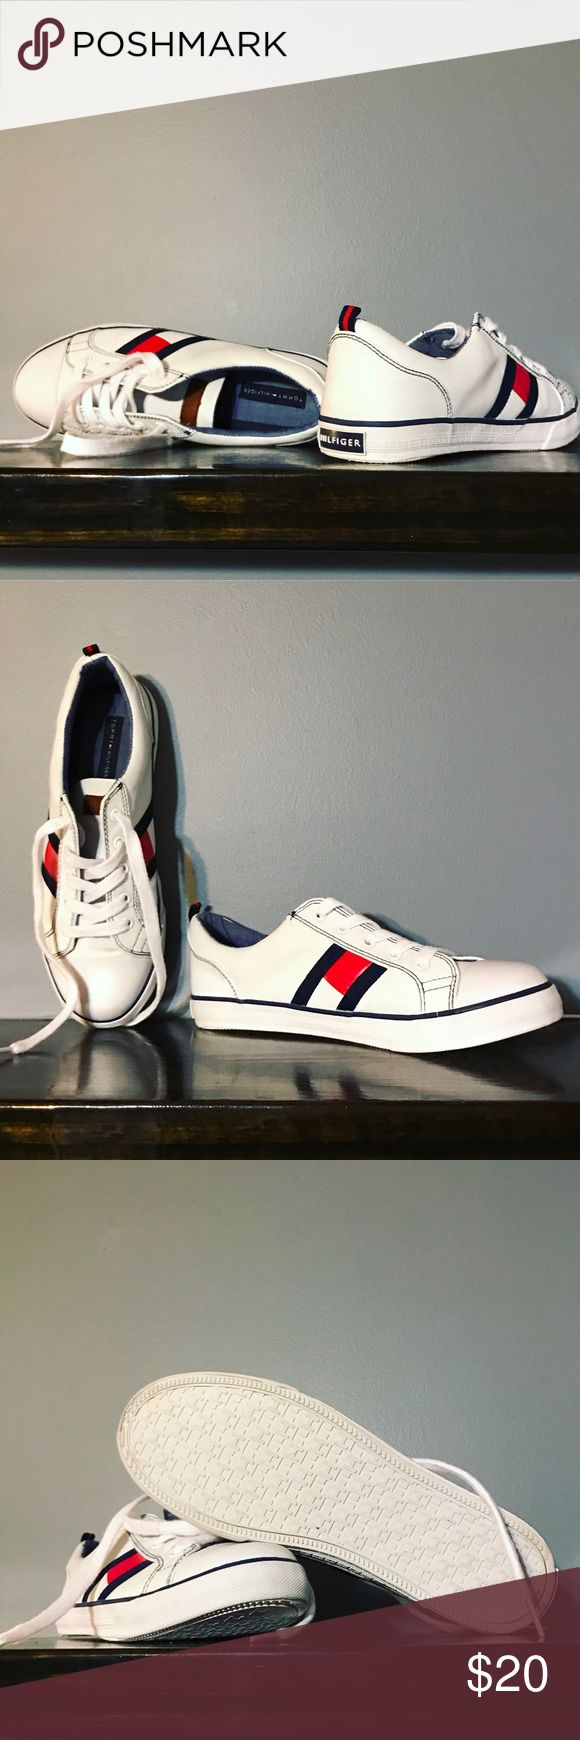 Tommy Hilfiger Shoes Great condition tennis shoes by Tommy Hilfiger. Classic TH style white with red and navy blue logo. Tommy Hilfiger Shoes Sneakers